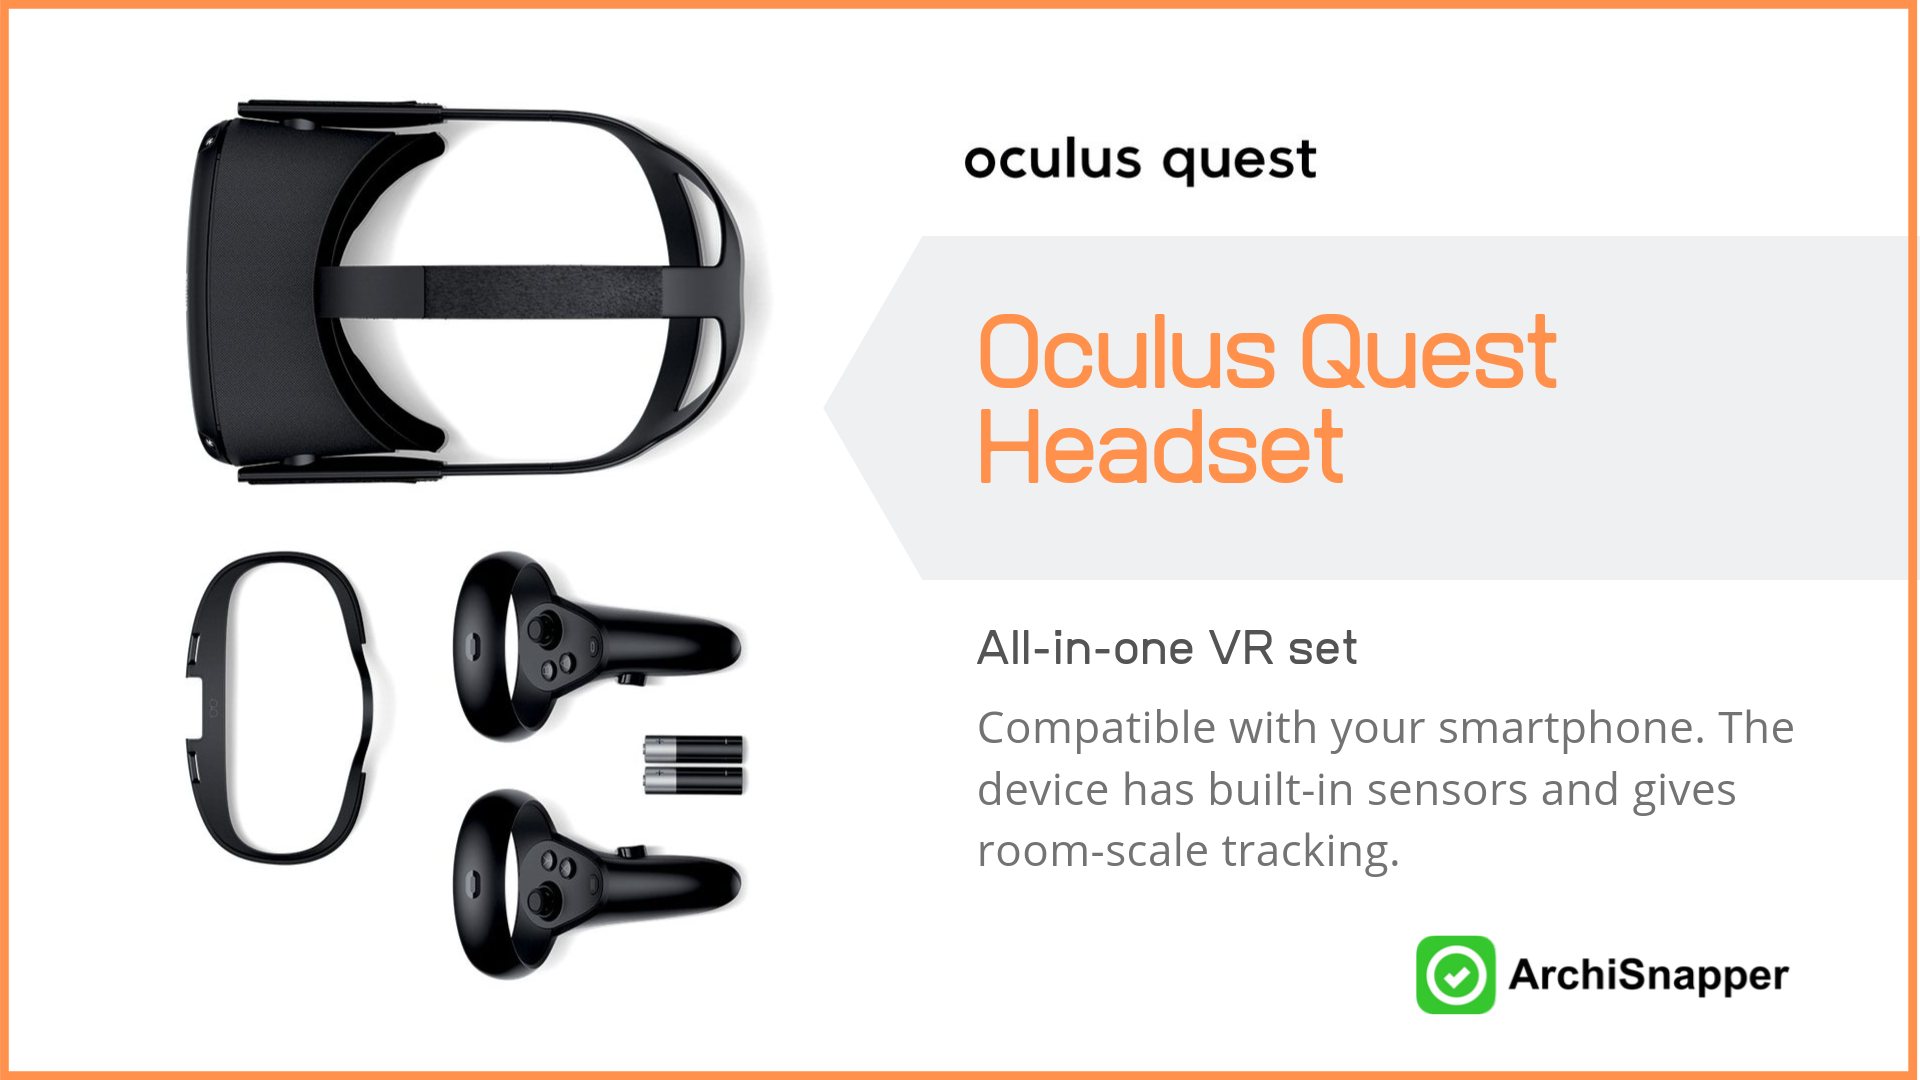 Oculus Quest Headset | List of the 15 must-have tech tools and accessories ideal for architects presented by Archisnapper